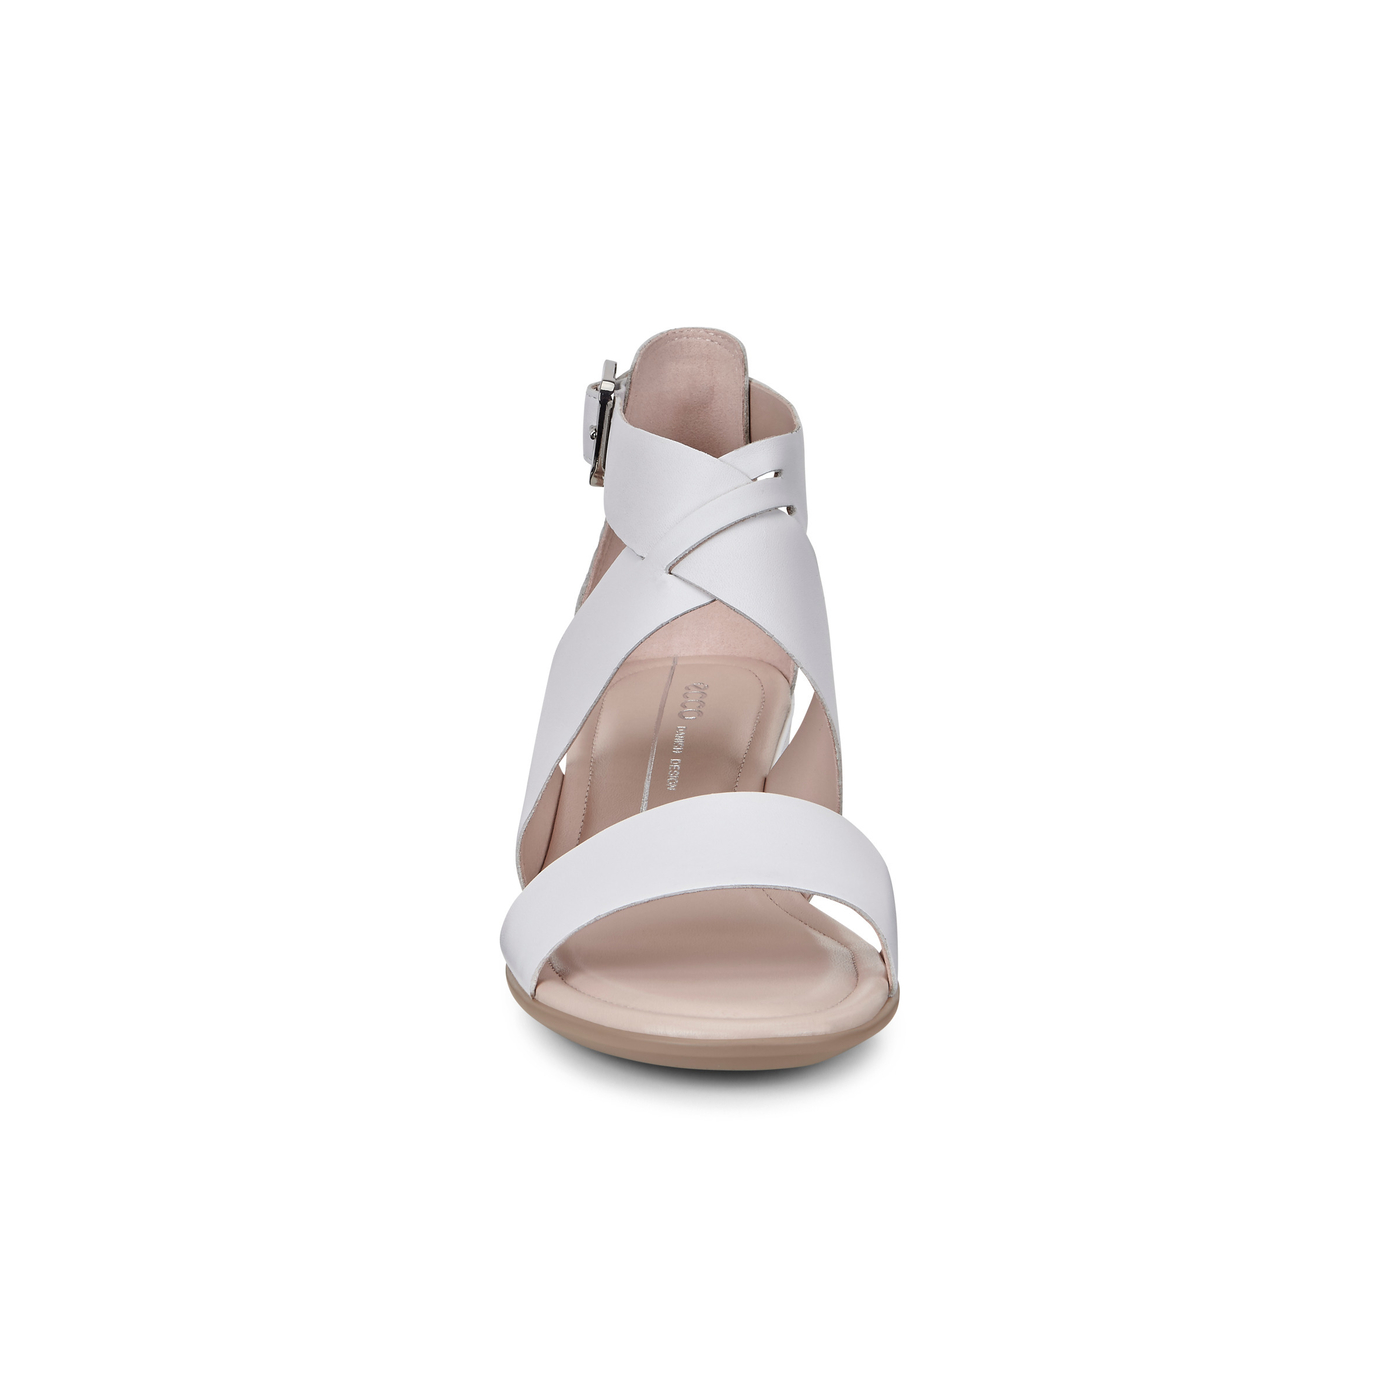 ECCO SHAPE WEDGE SANDAL Ankle Strap 35mm